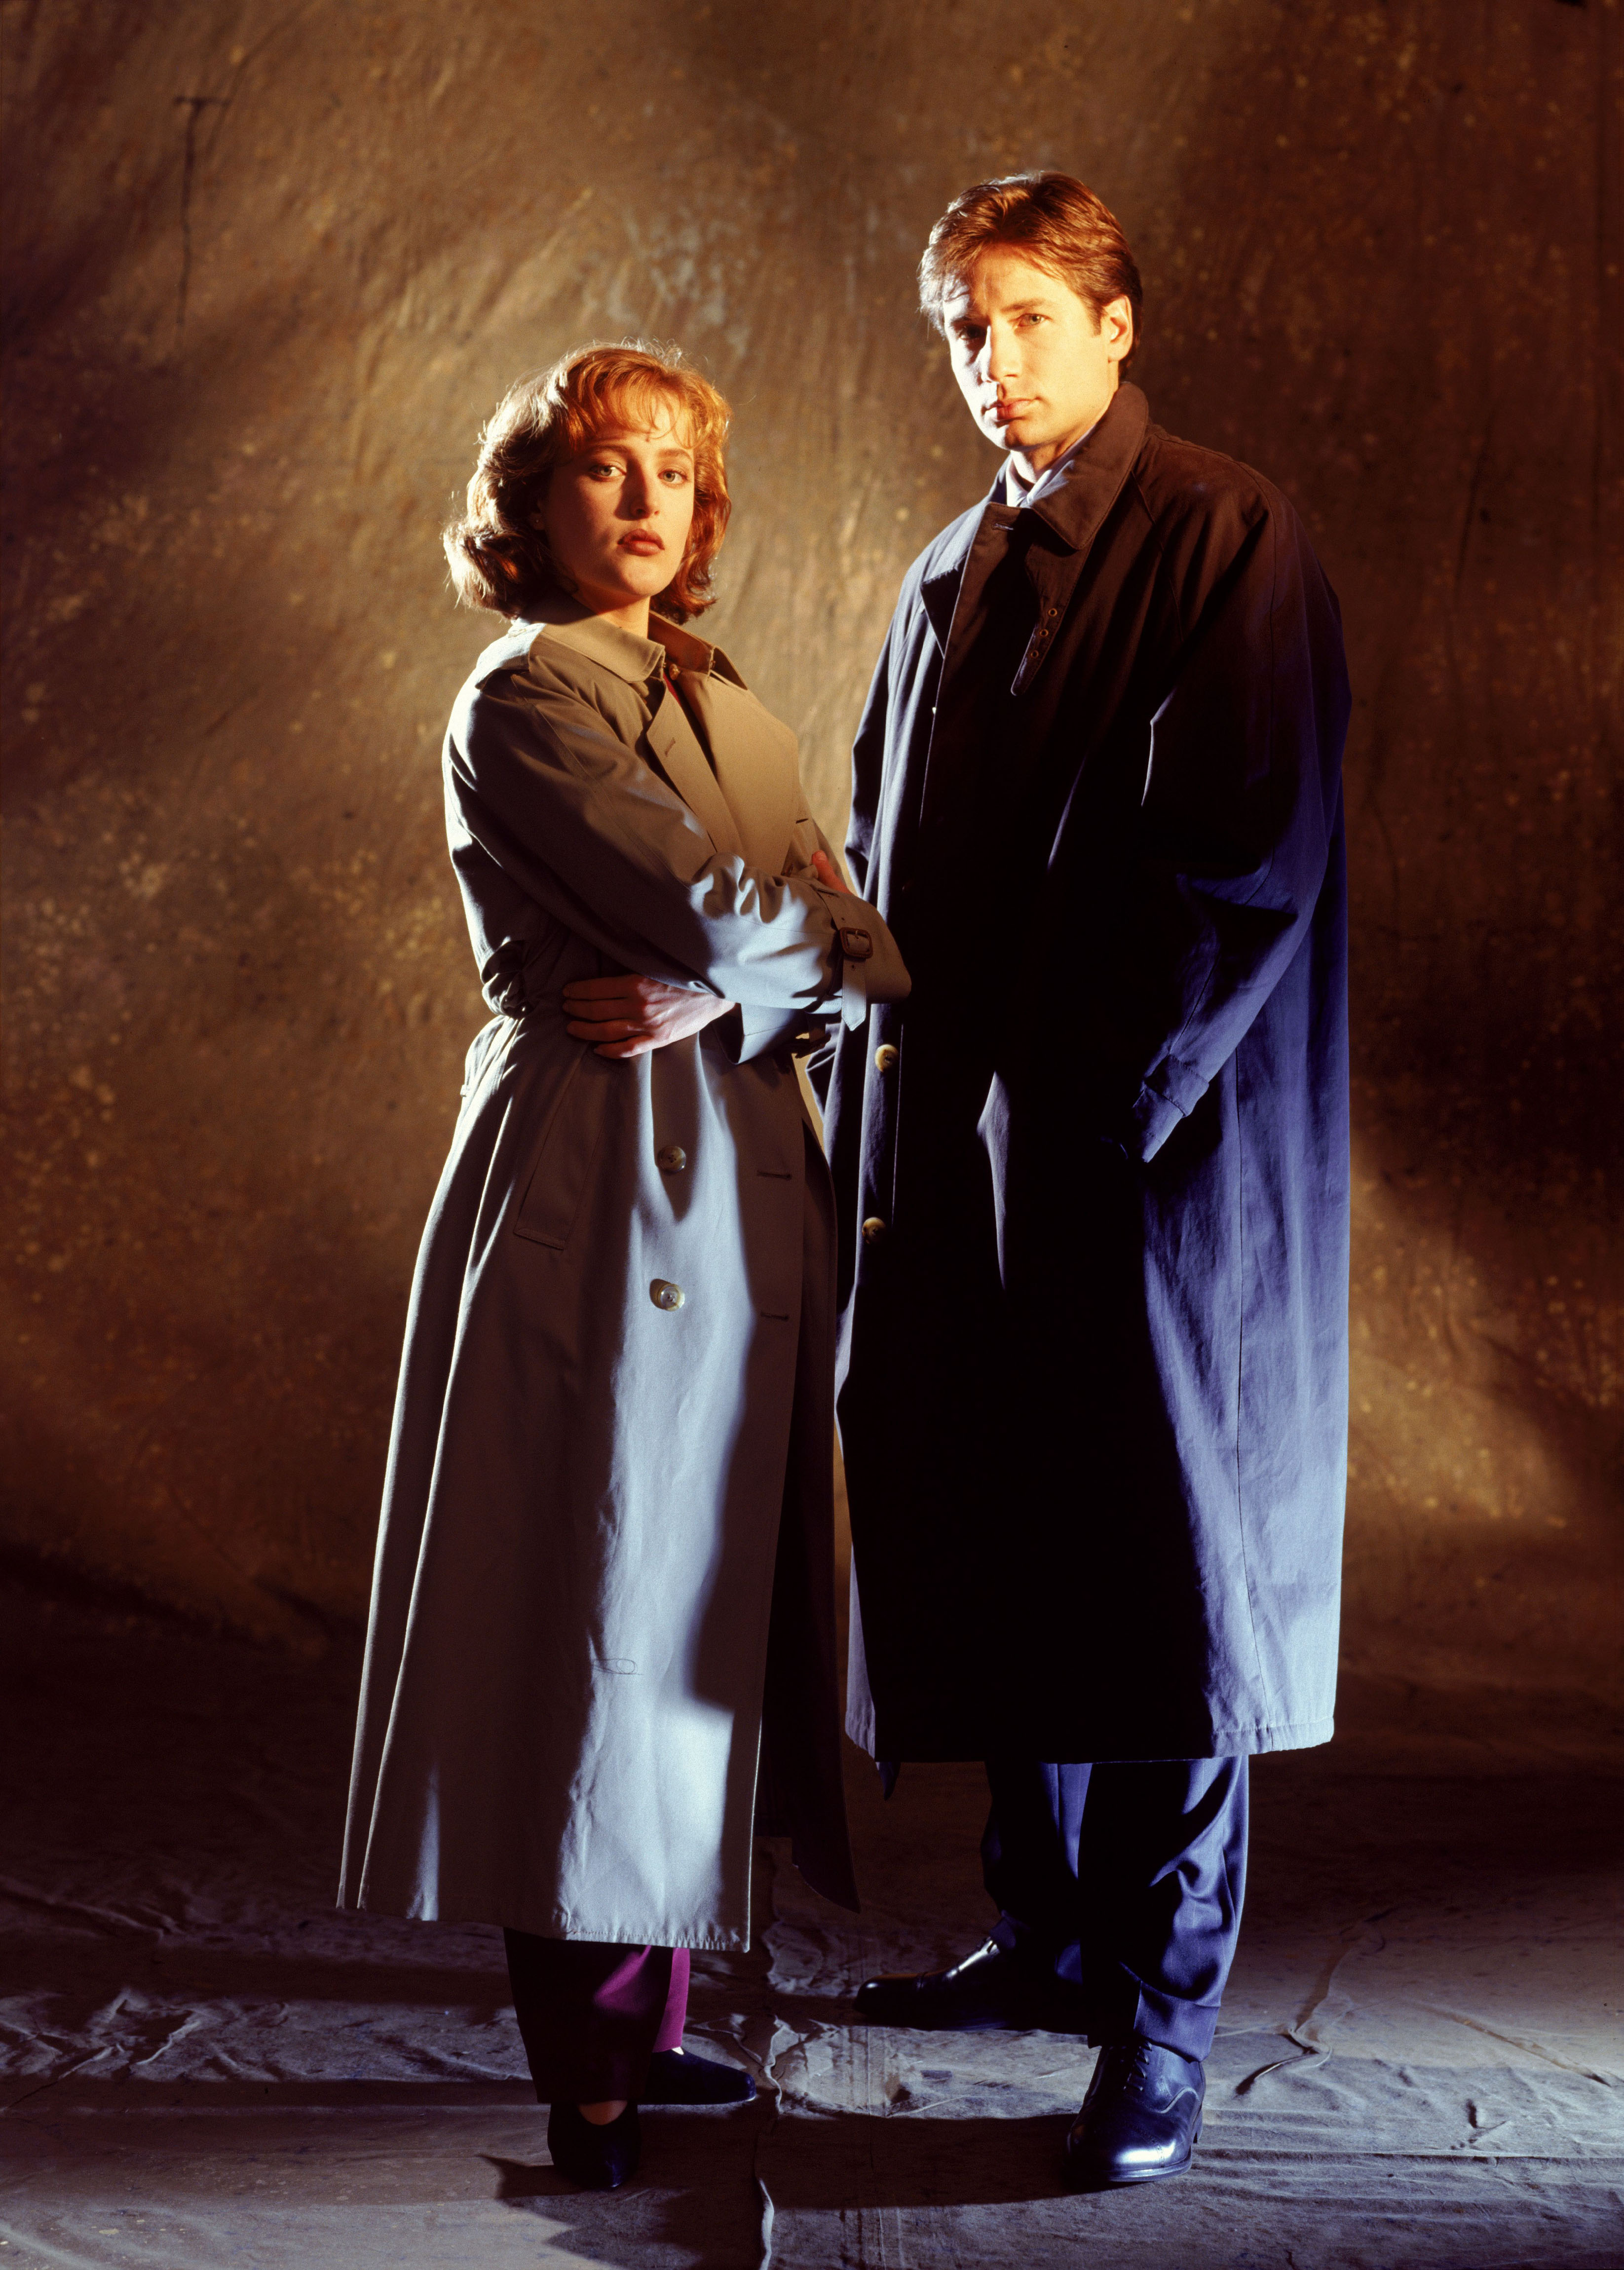 Gillian Anderson and David Duchovny are seen in a promotional still for <i>The X-Files</i> season 1 in 1993.